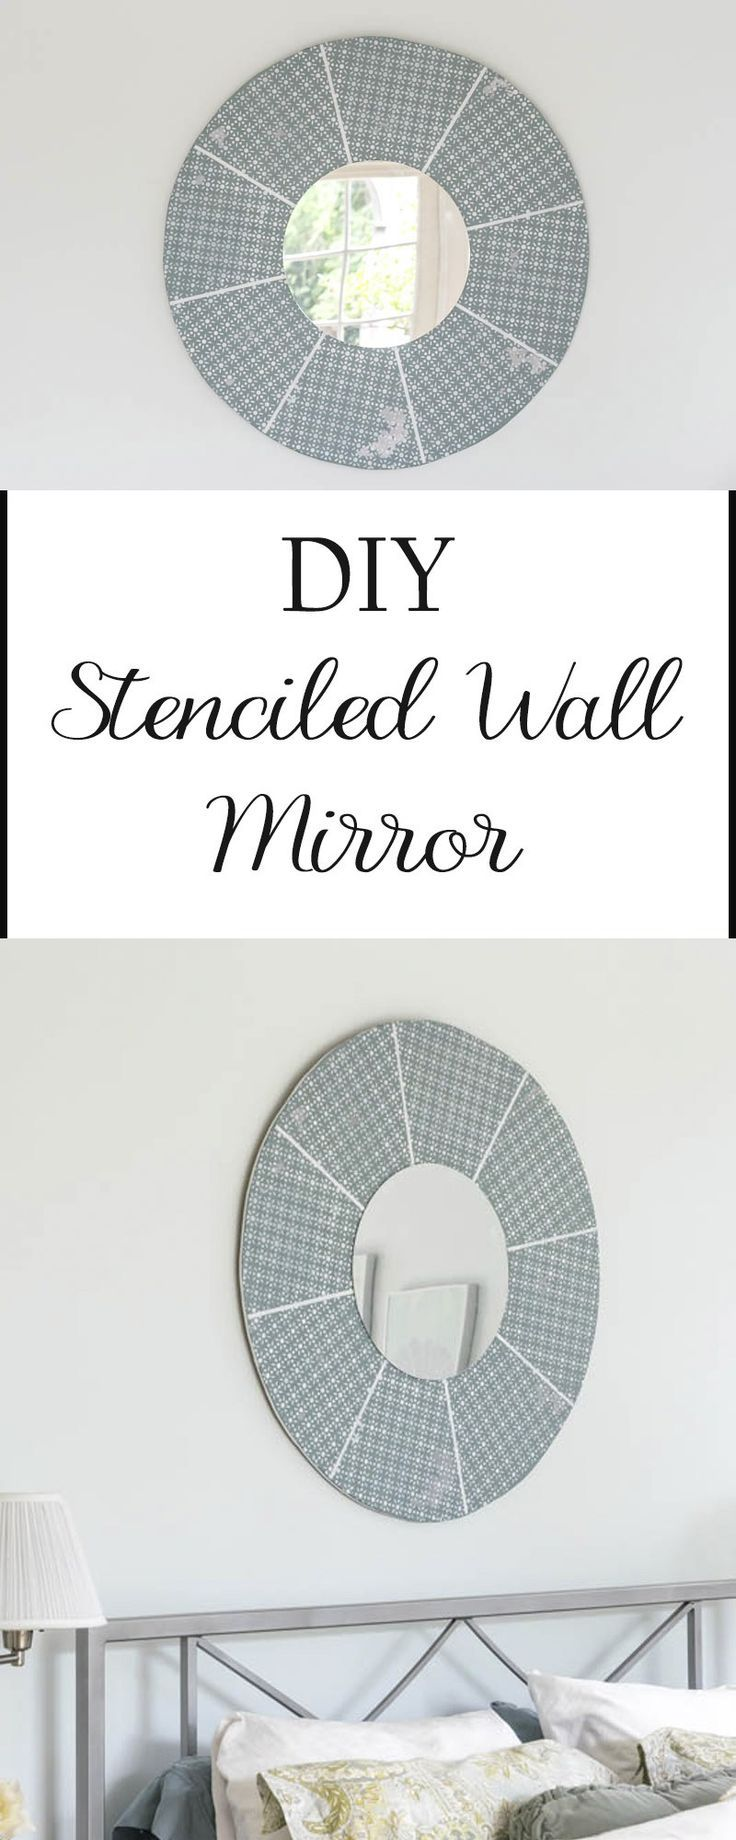 311 best images about diy projects on pinterest diy coat for Small round craft mirrors